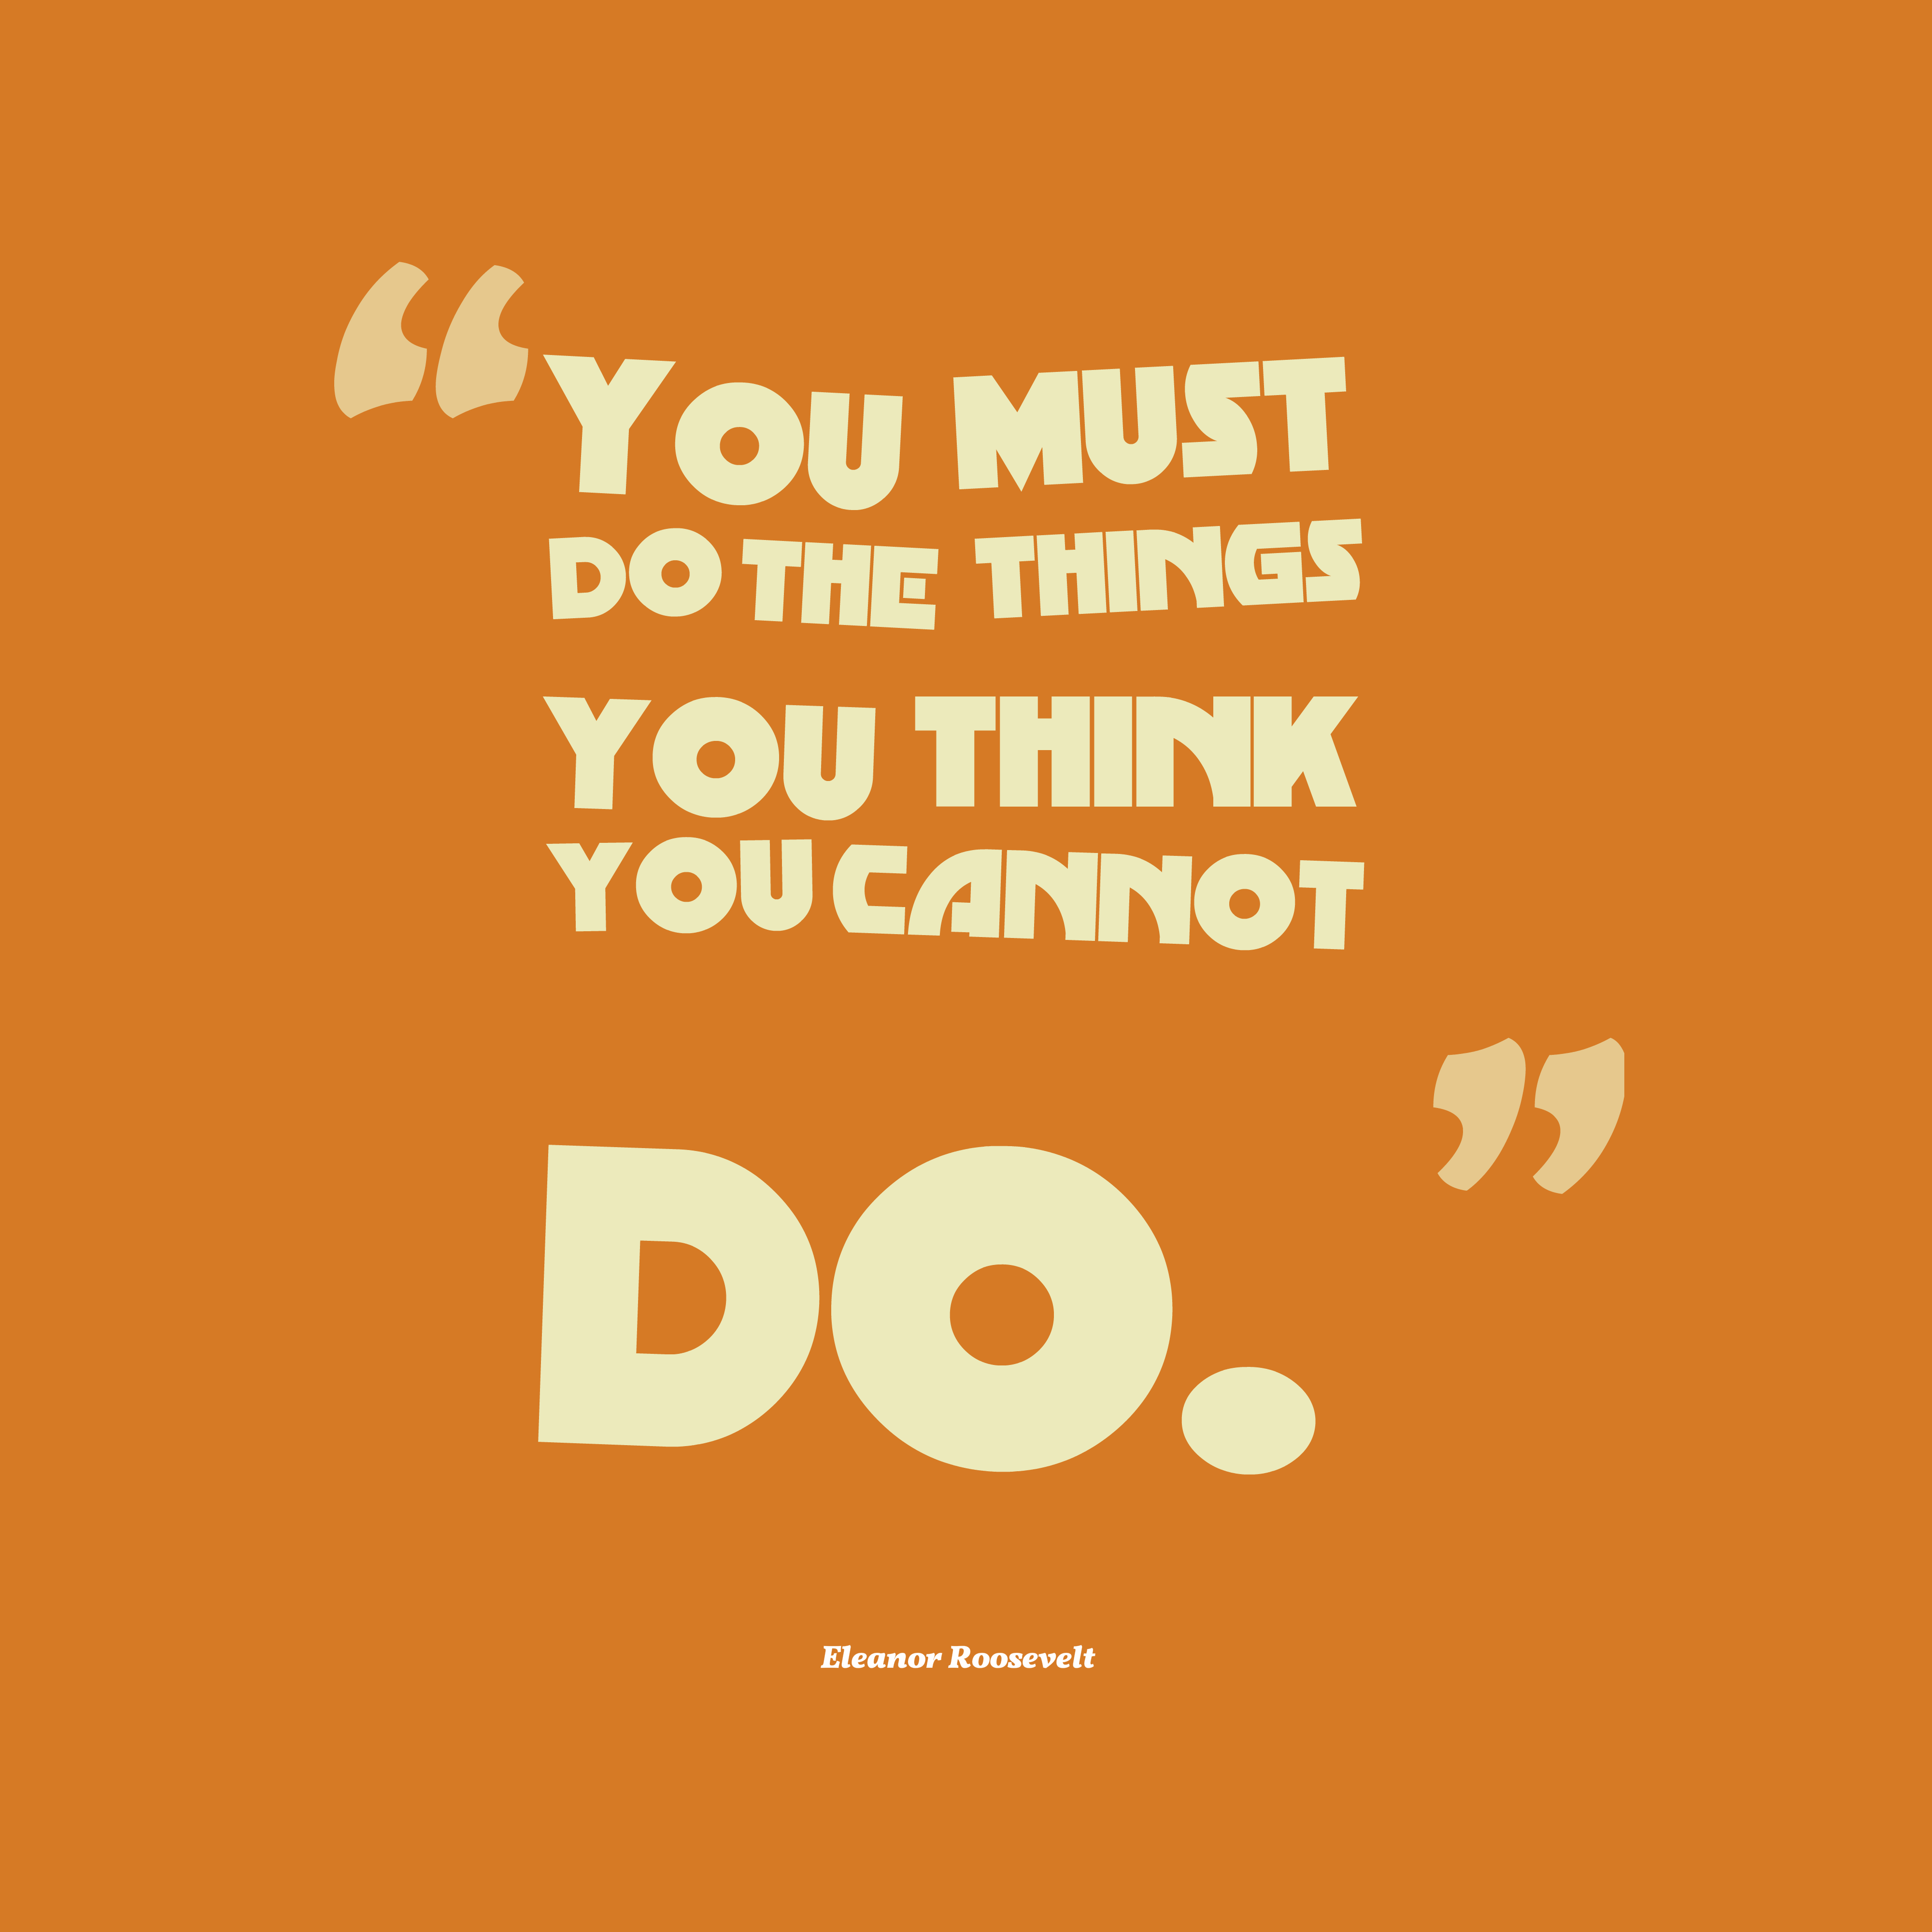 Quotes image of You must do the things you think you cannot do.